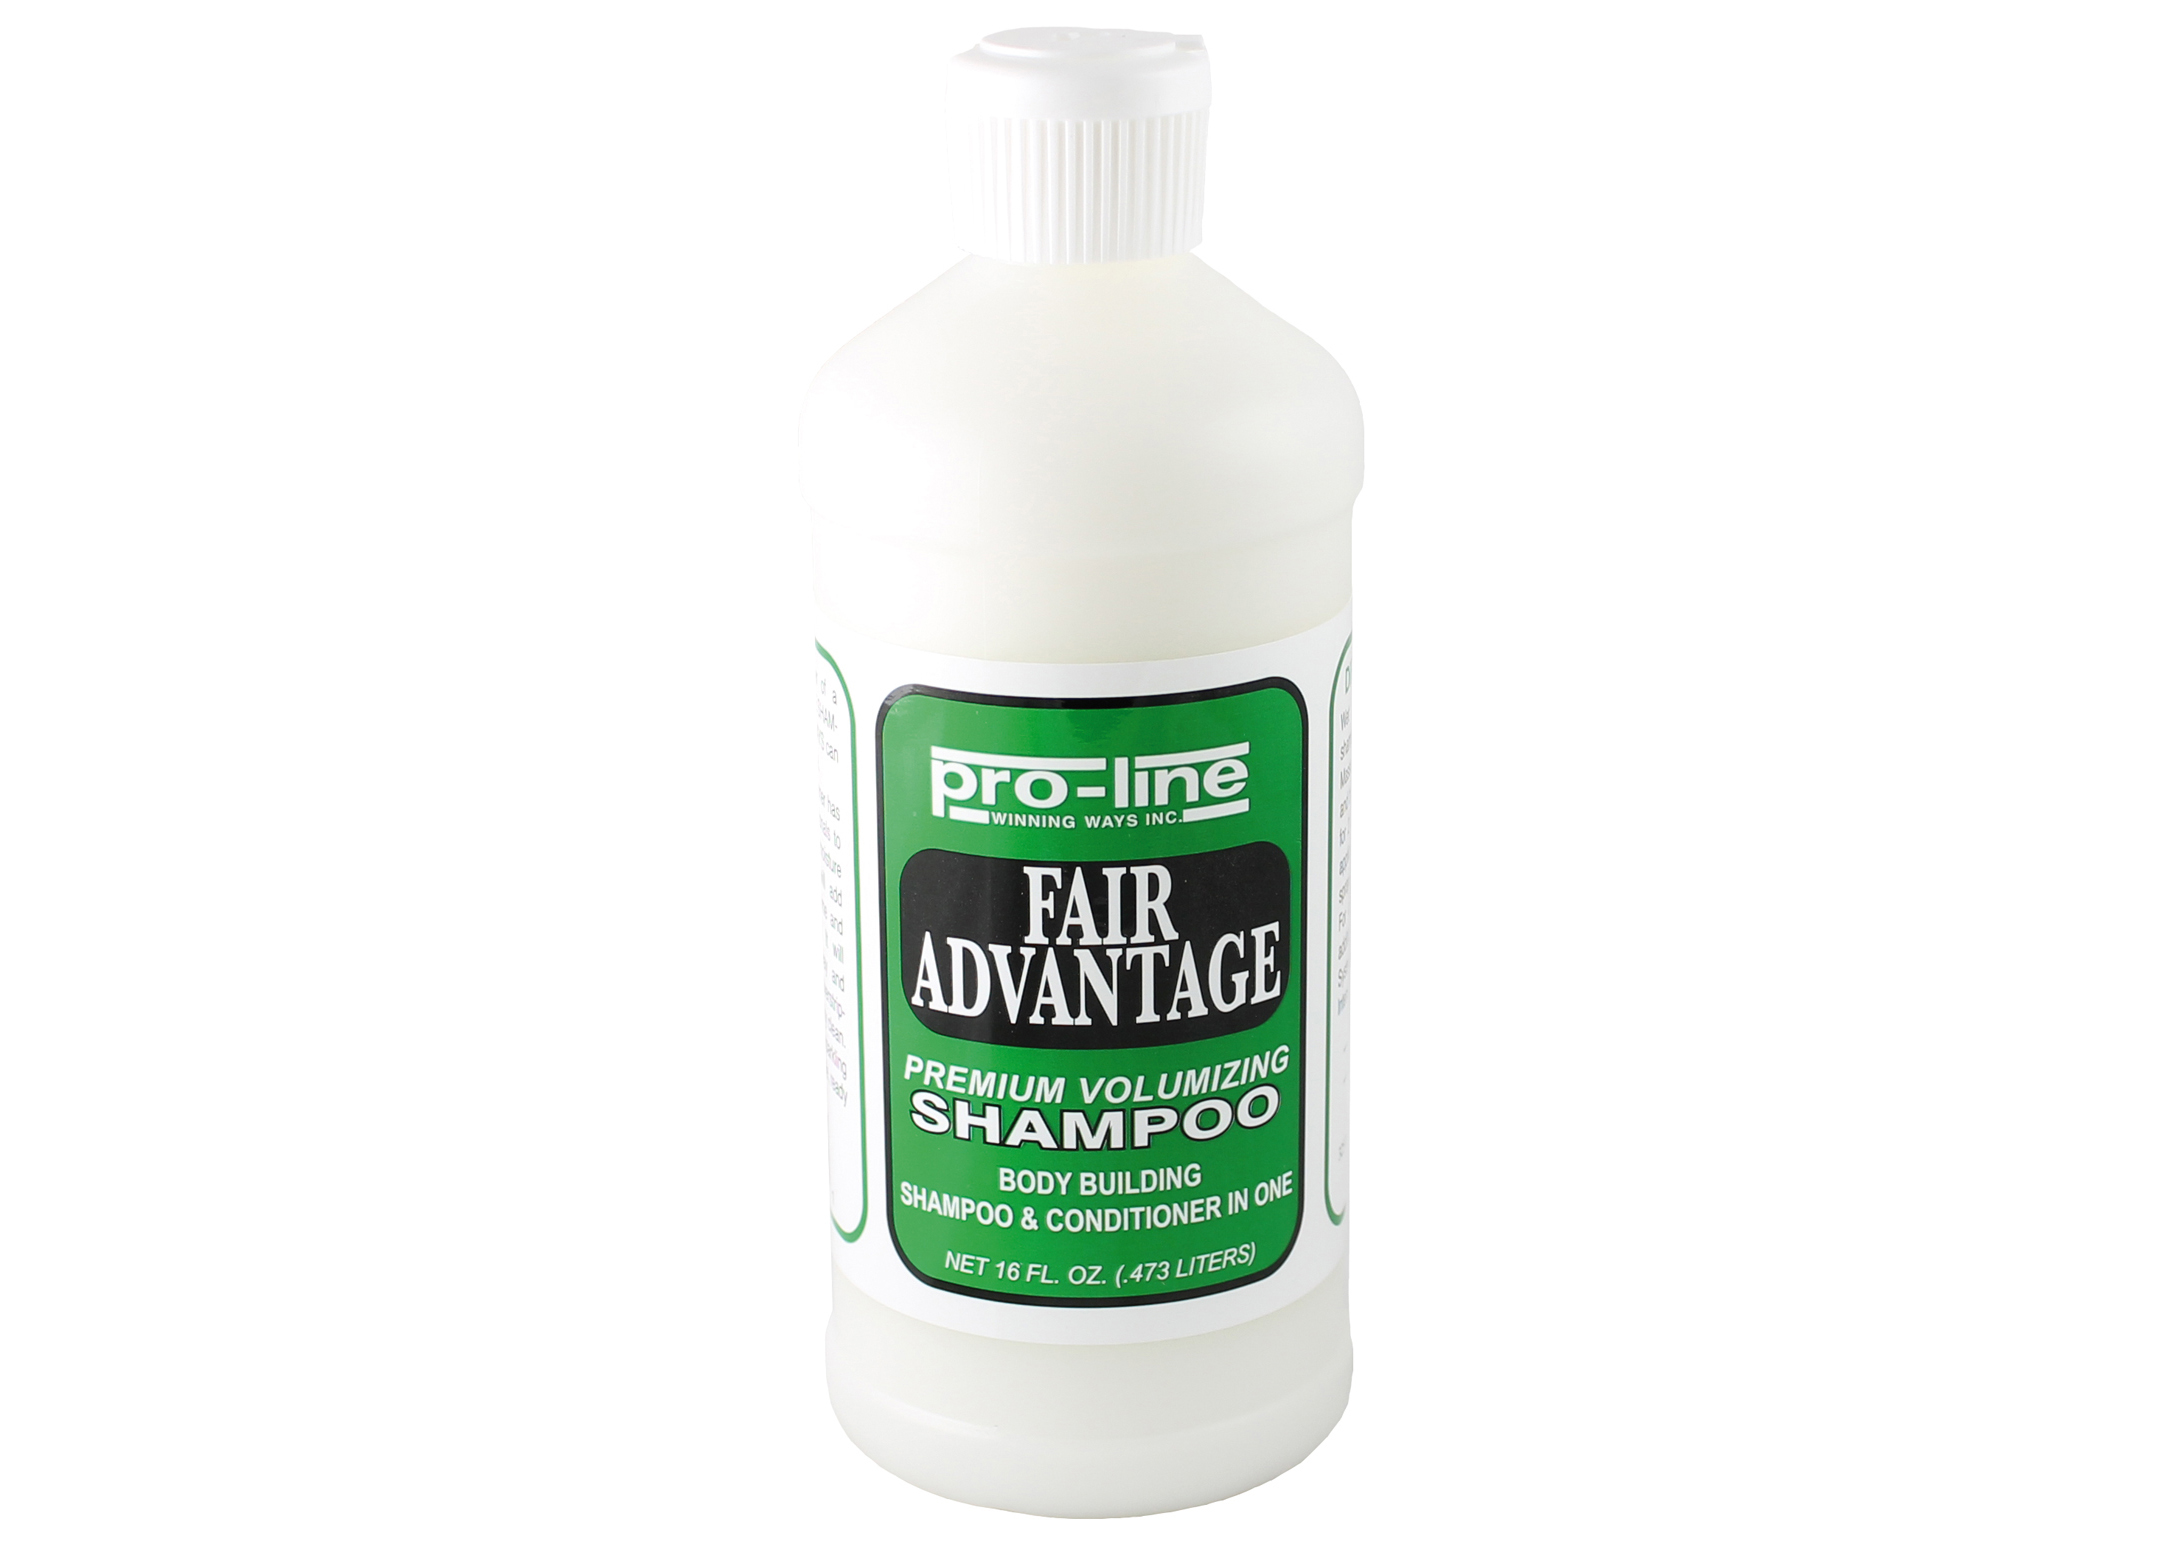 Pro Line Fair Advantage Shampoo For Dogs, Cats And Horses